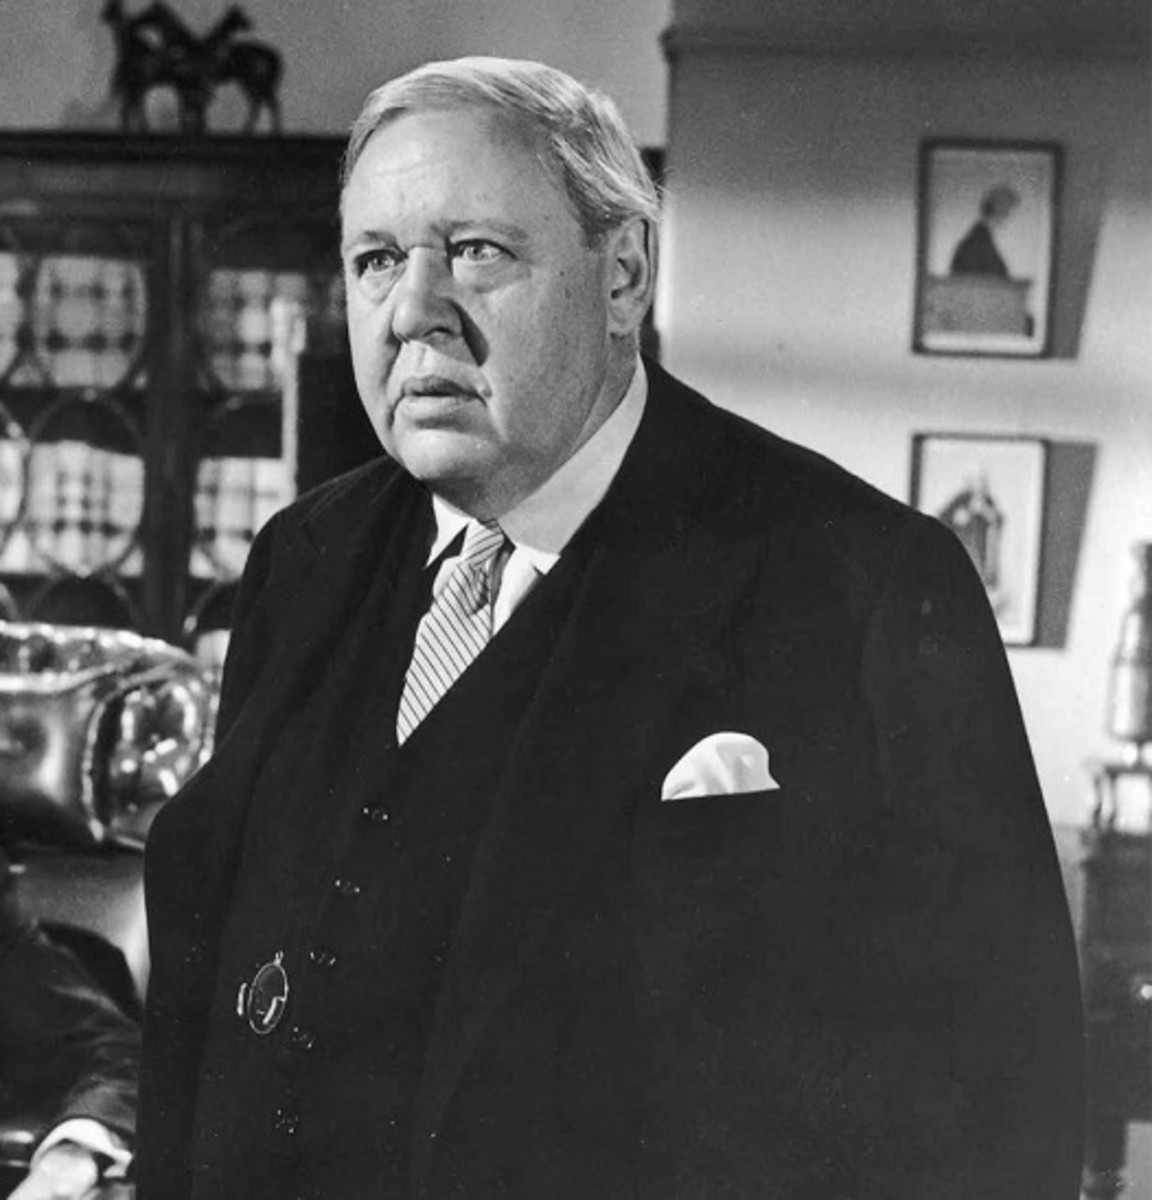 Charles Laughton in Witness for the Prosecution (1957)